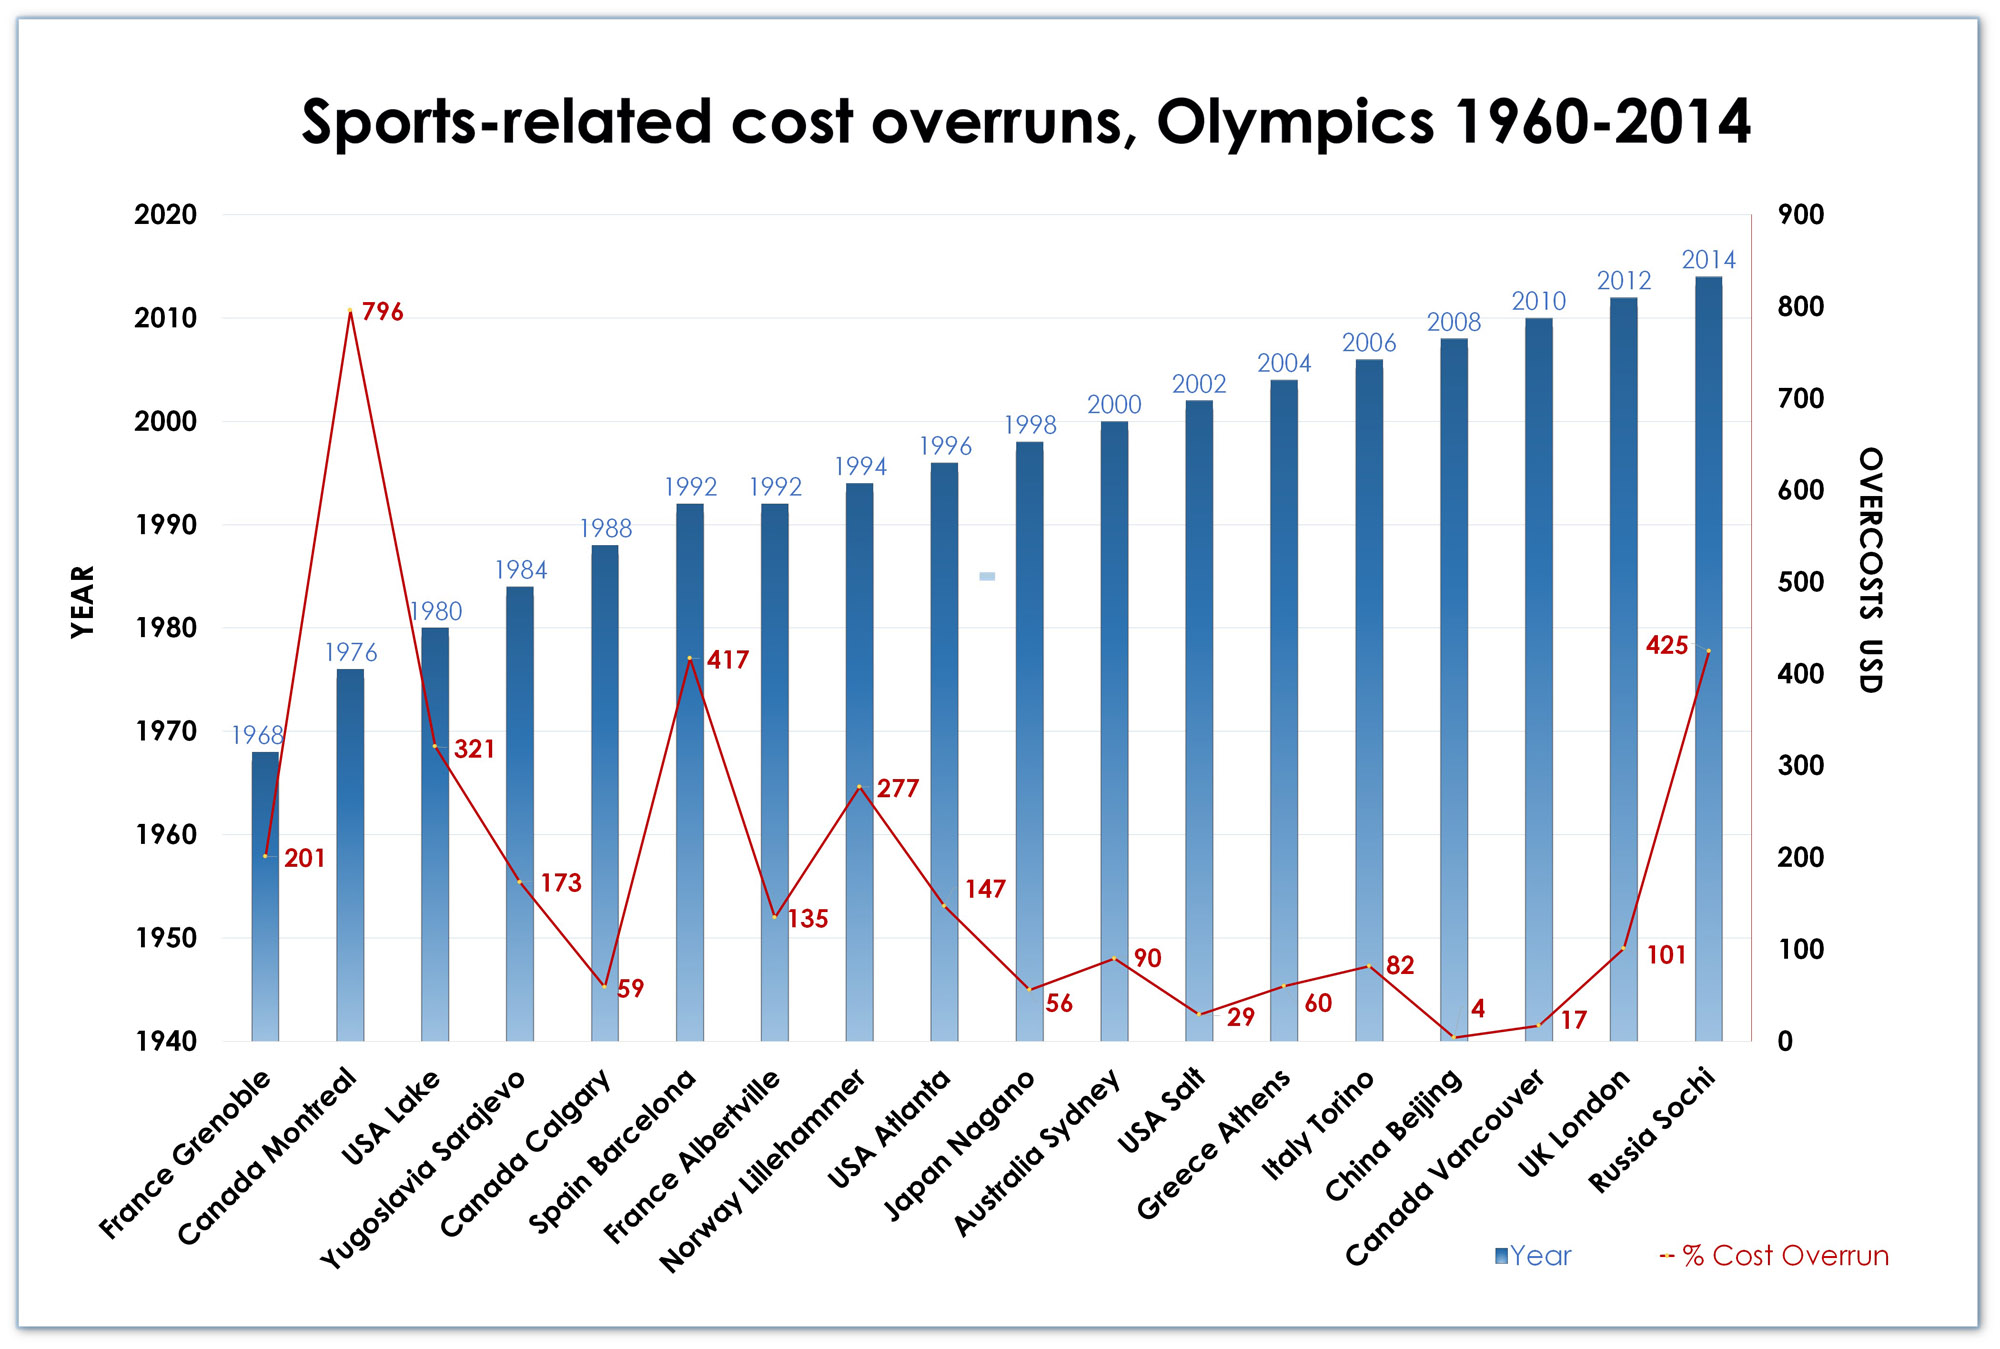 Olympic Island – wykres - Sports-related cost overruns, Olympics 1960-2014